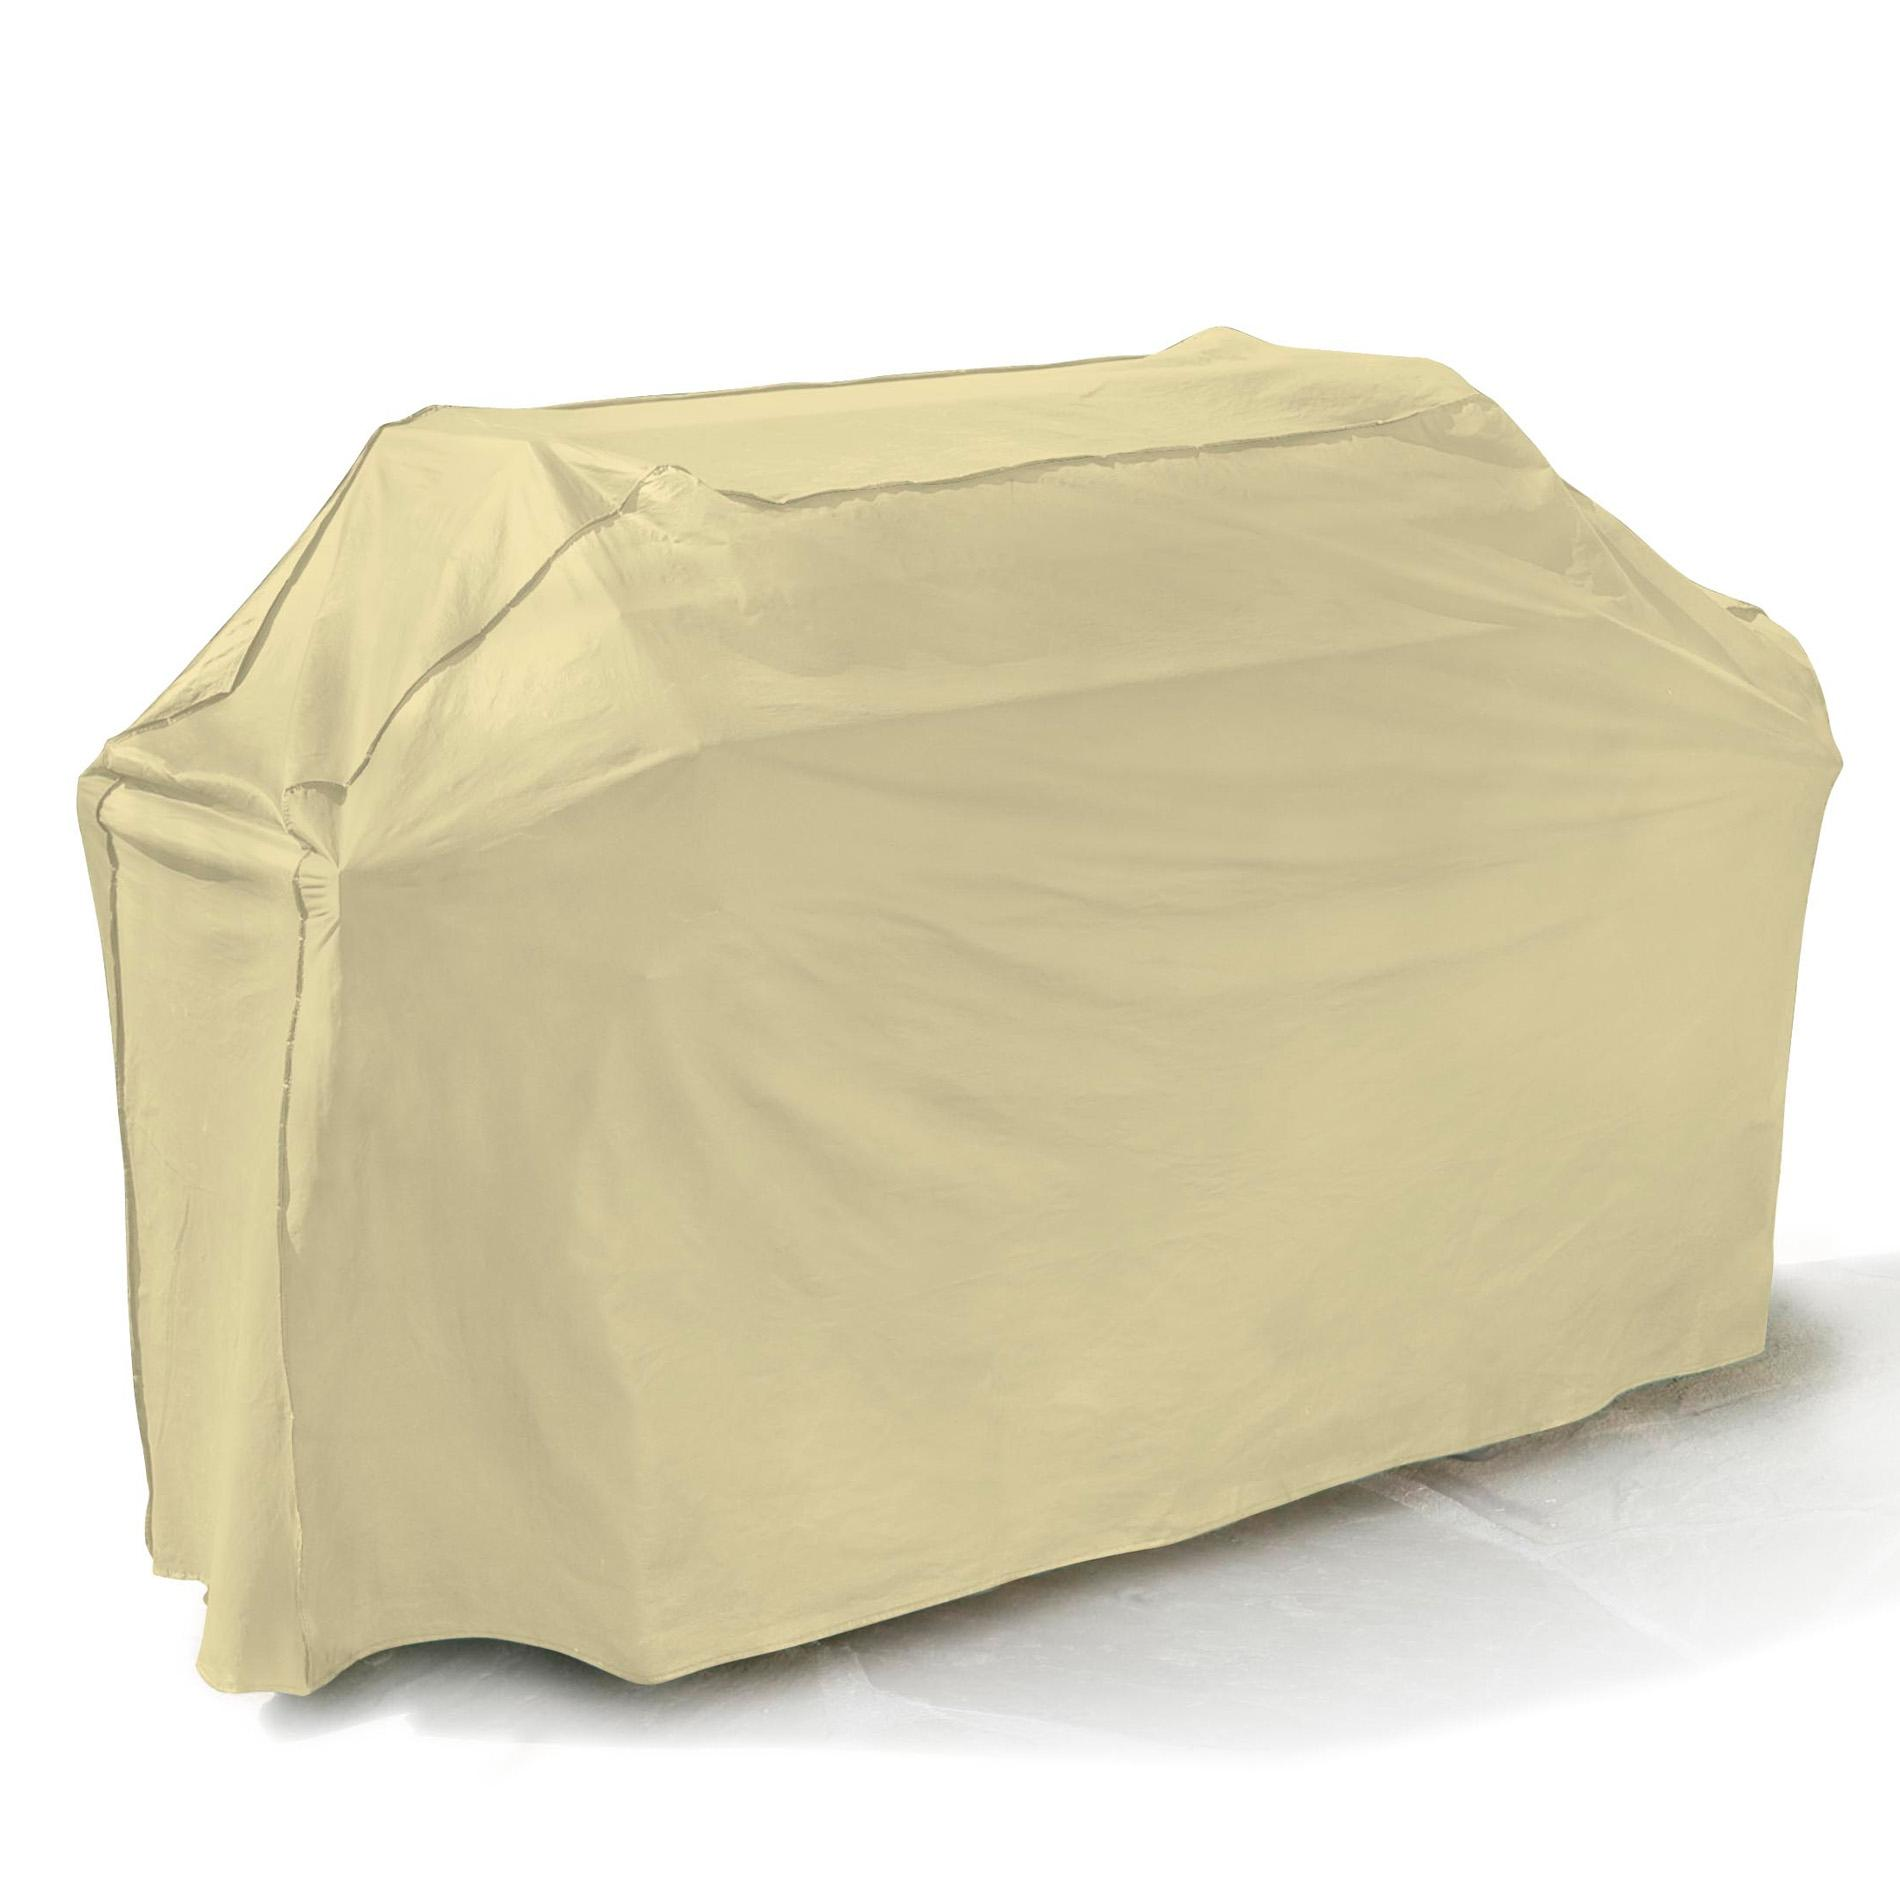 Mr. BBQ Universal Full Length 65-inch Grill Cover